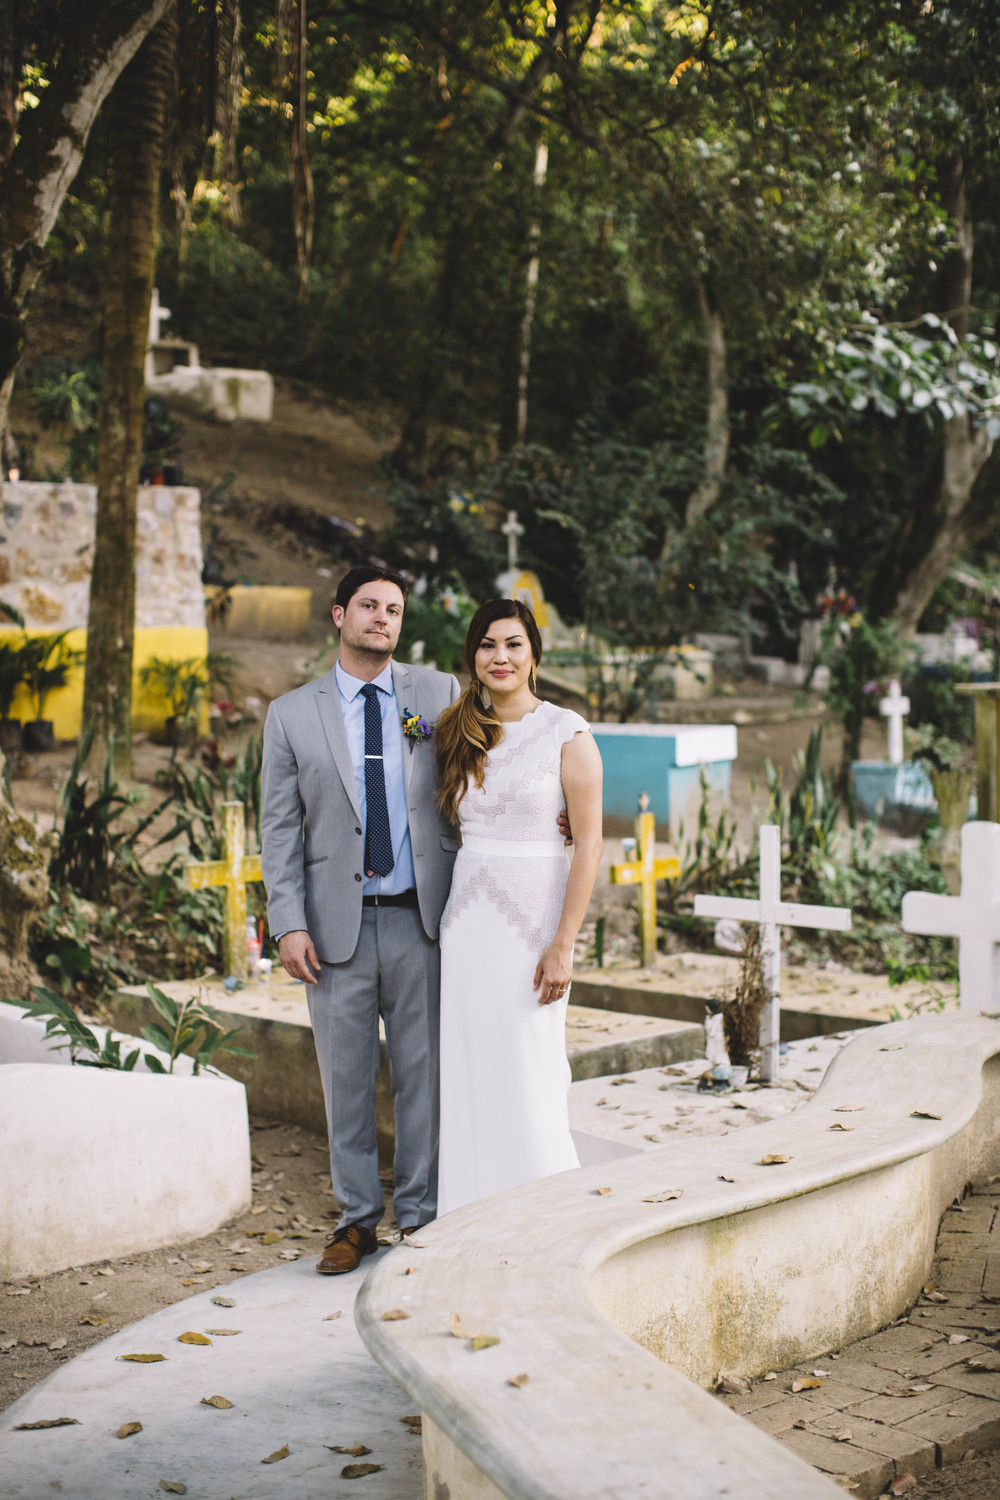 20160206_Diana+Dave_sayulitawedding_mexico_wedding-083.jpg